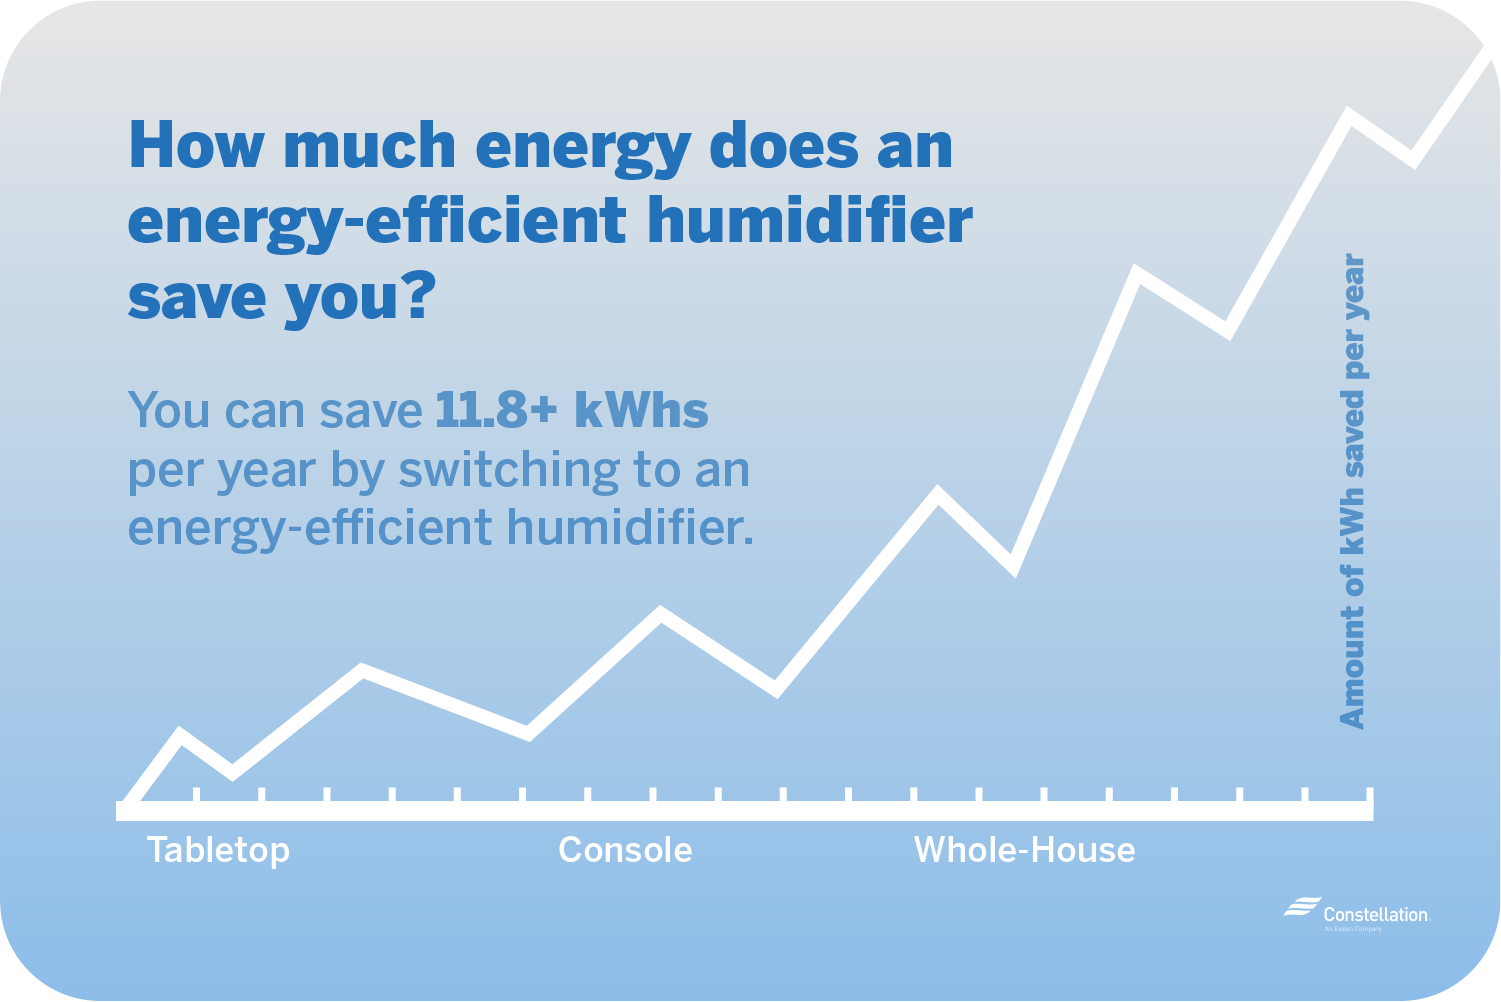 energy efficient humidifiers save energy 11.8 kWhs and more per year